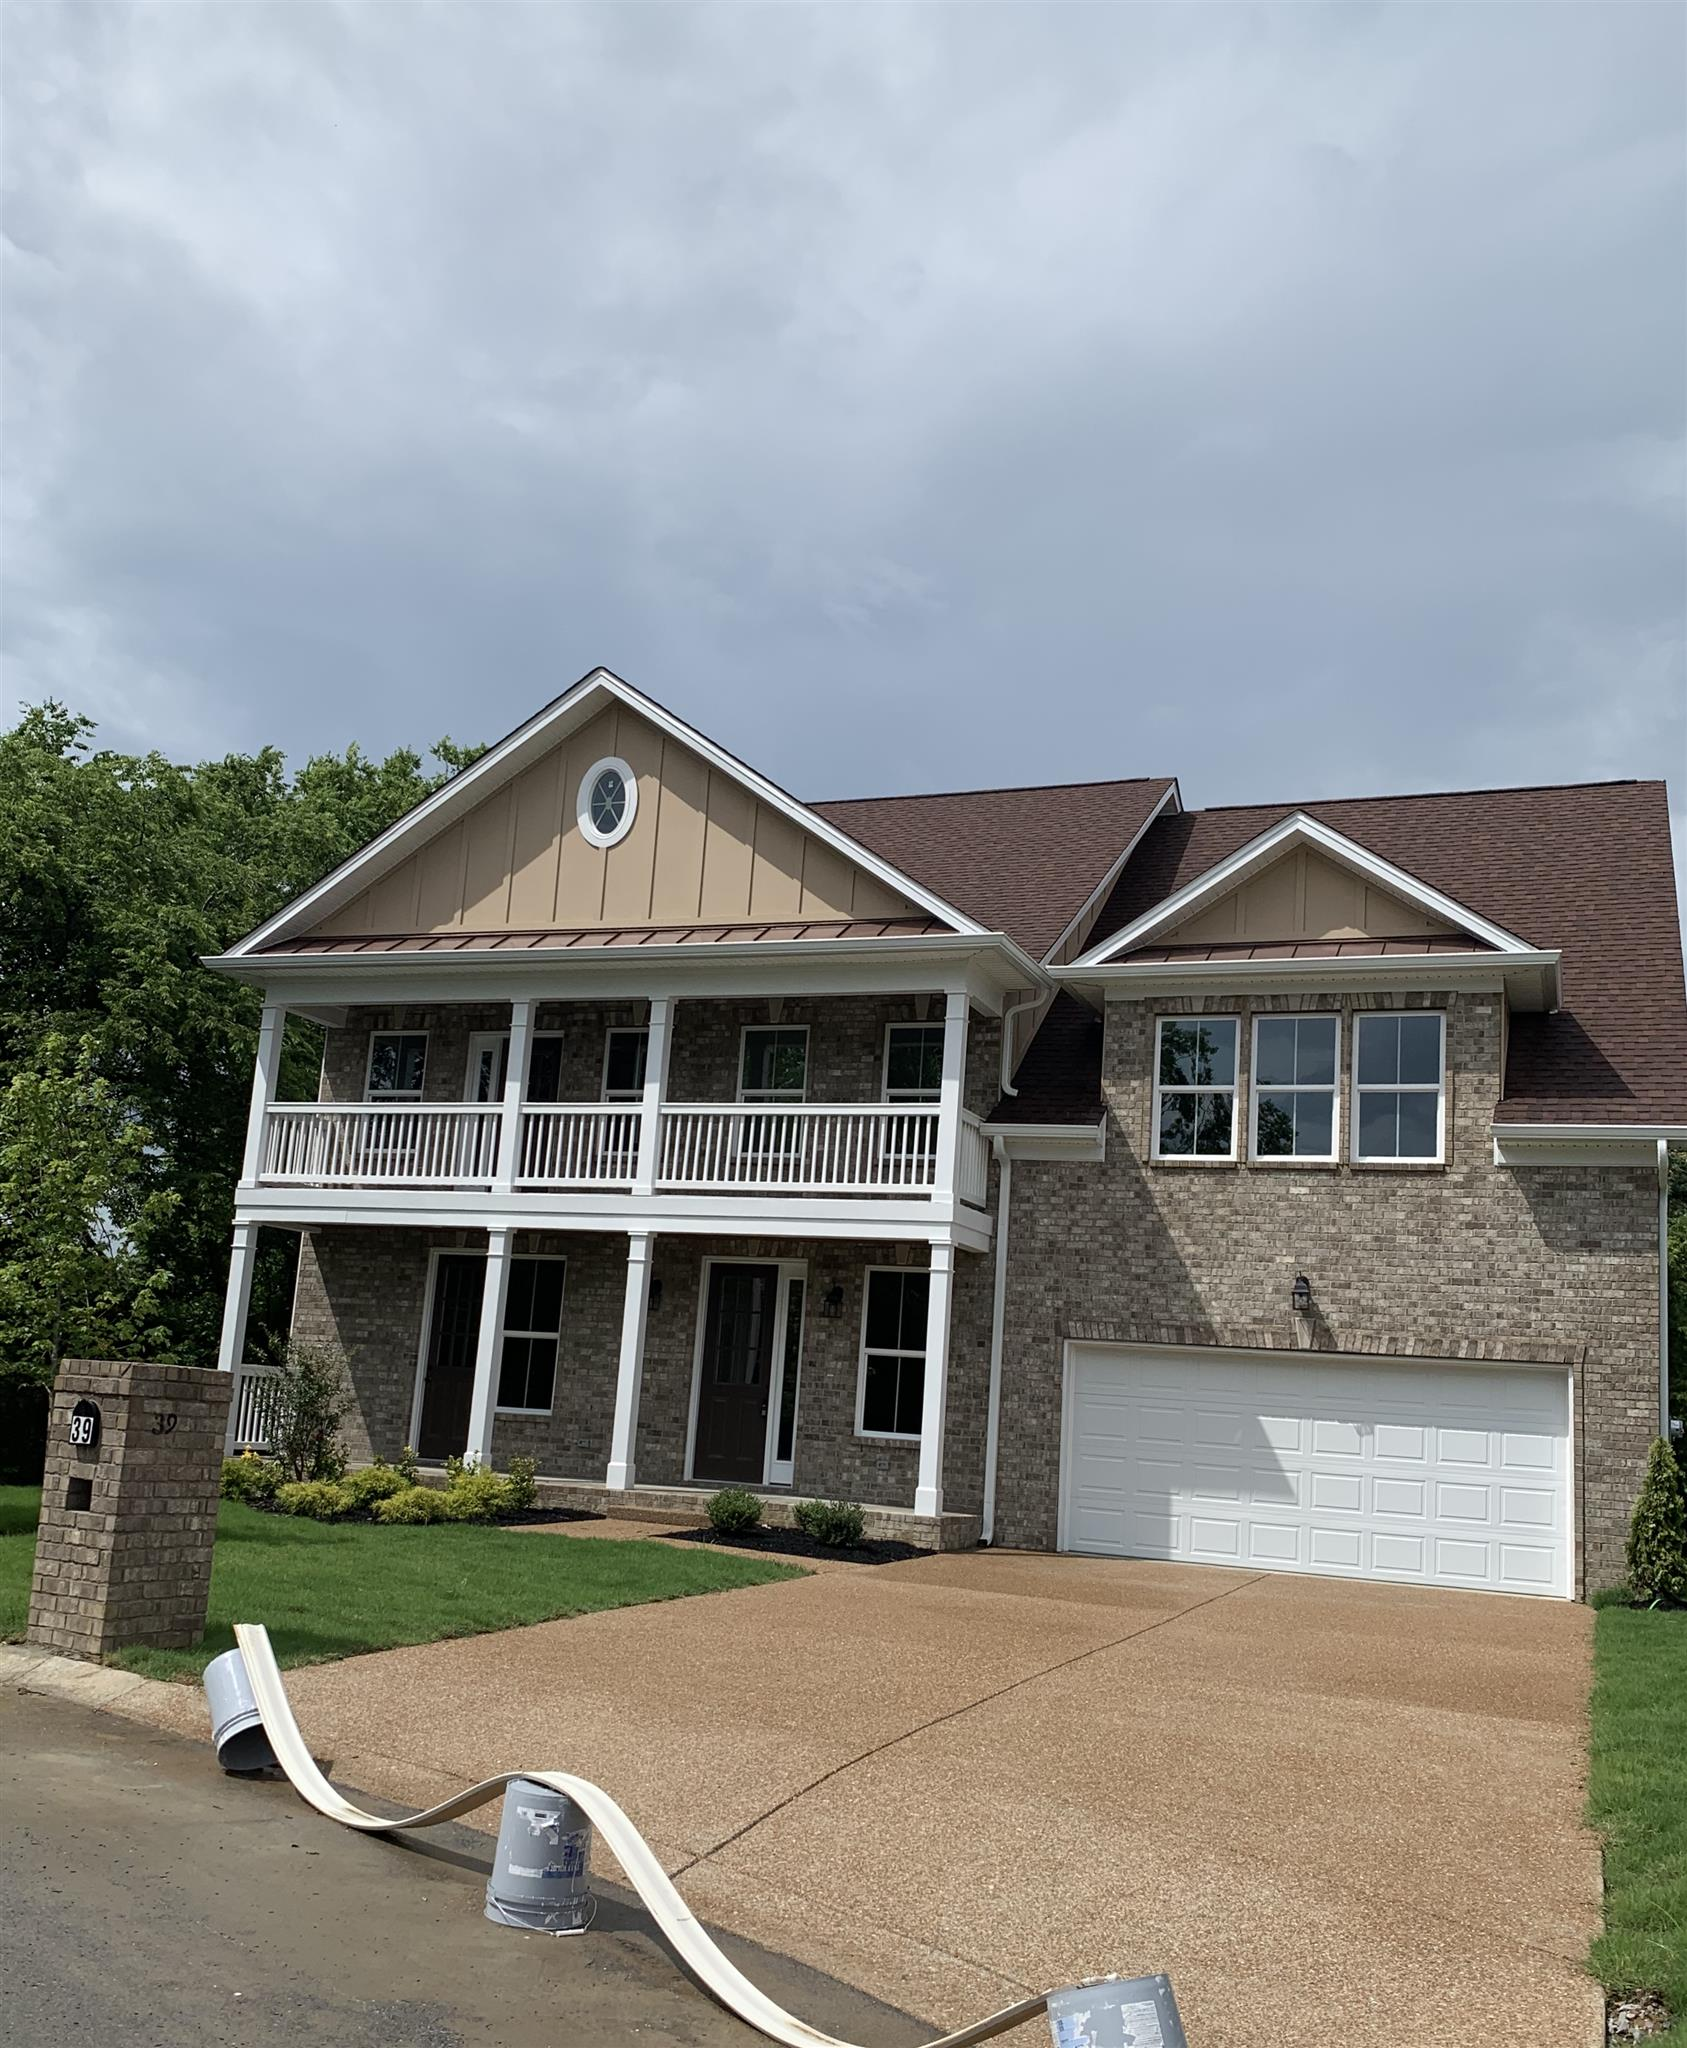 39 Vine Way, Lebanon, TN 37087 - Lebanon, TN real estate listing